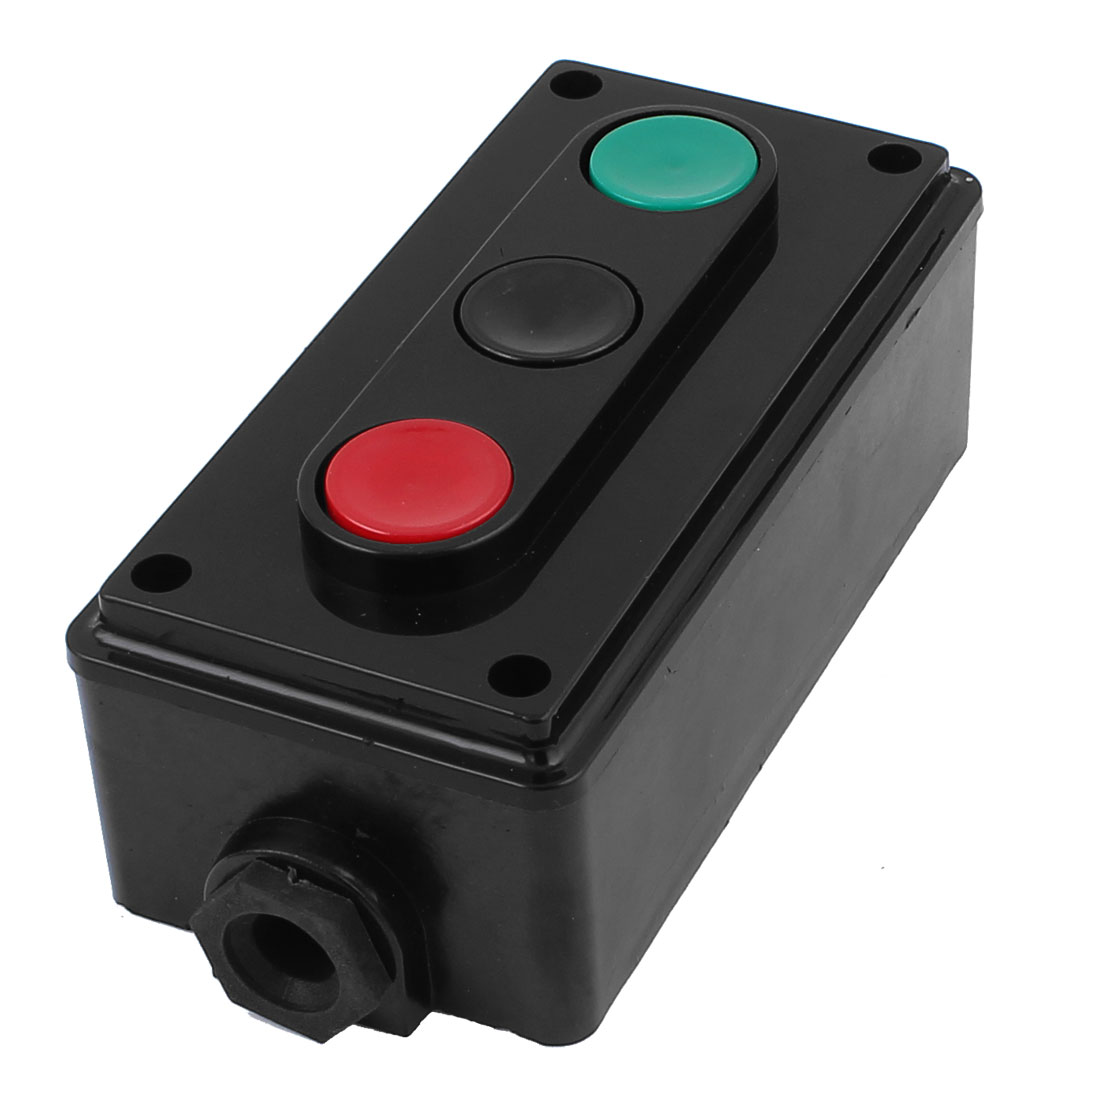 LA4-3H AC 500V 5A Panel Mounted Momentary Push Button Switch